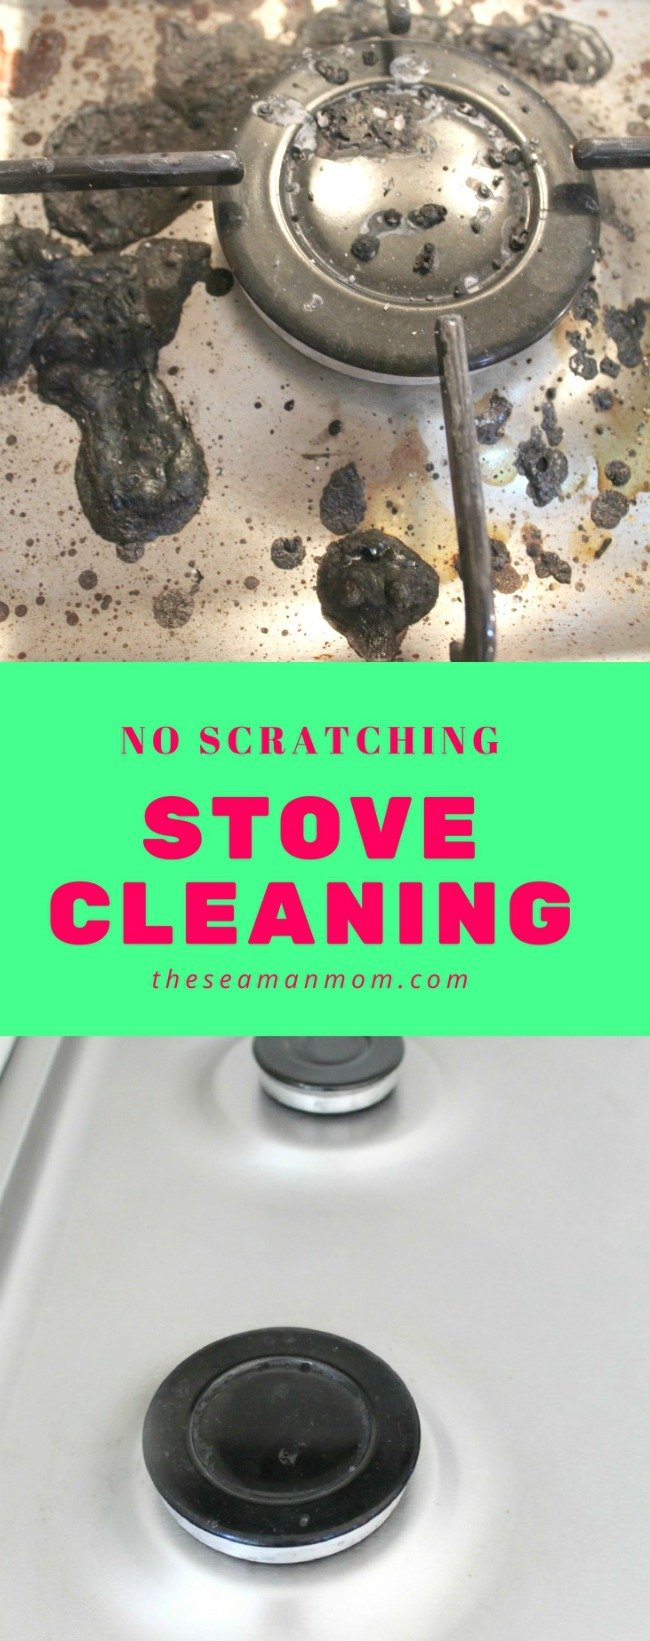 Best Way To Clean Stainless Steel Sink Without Heavy Chemicals